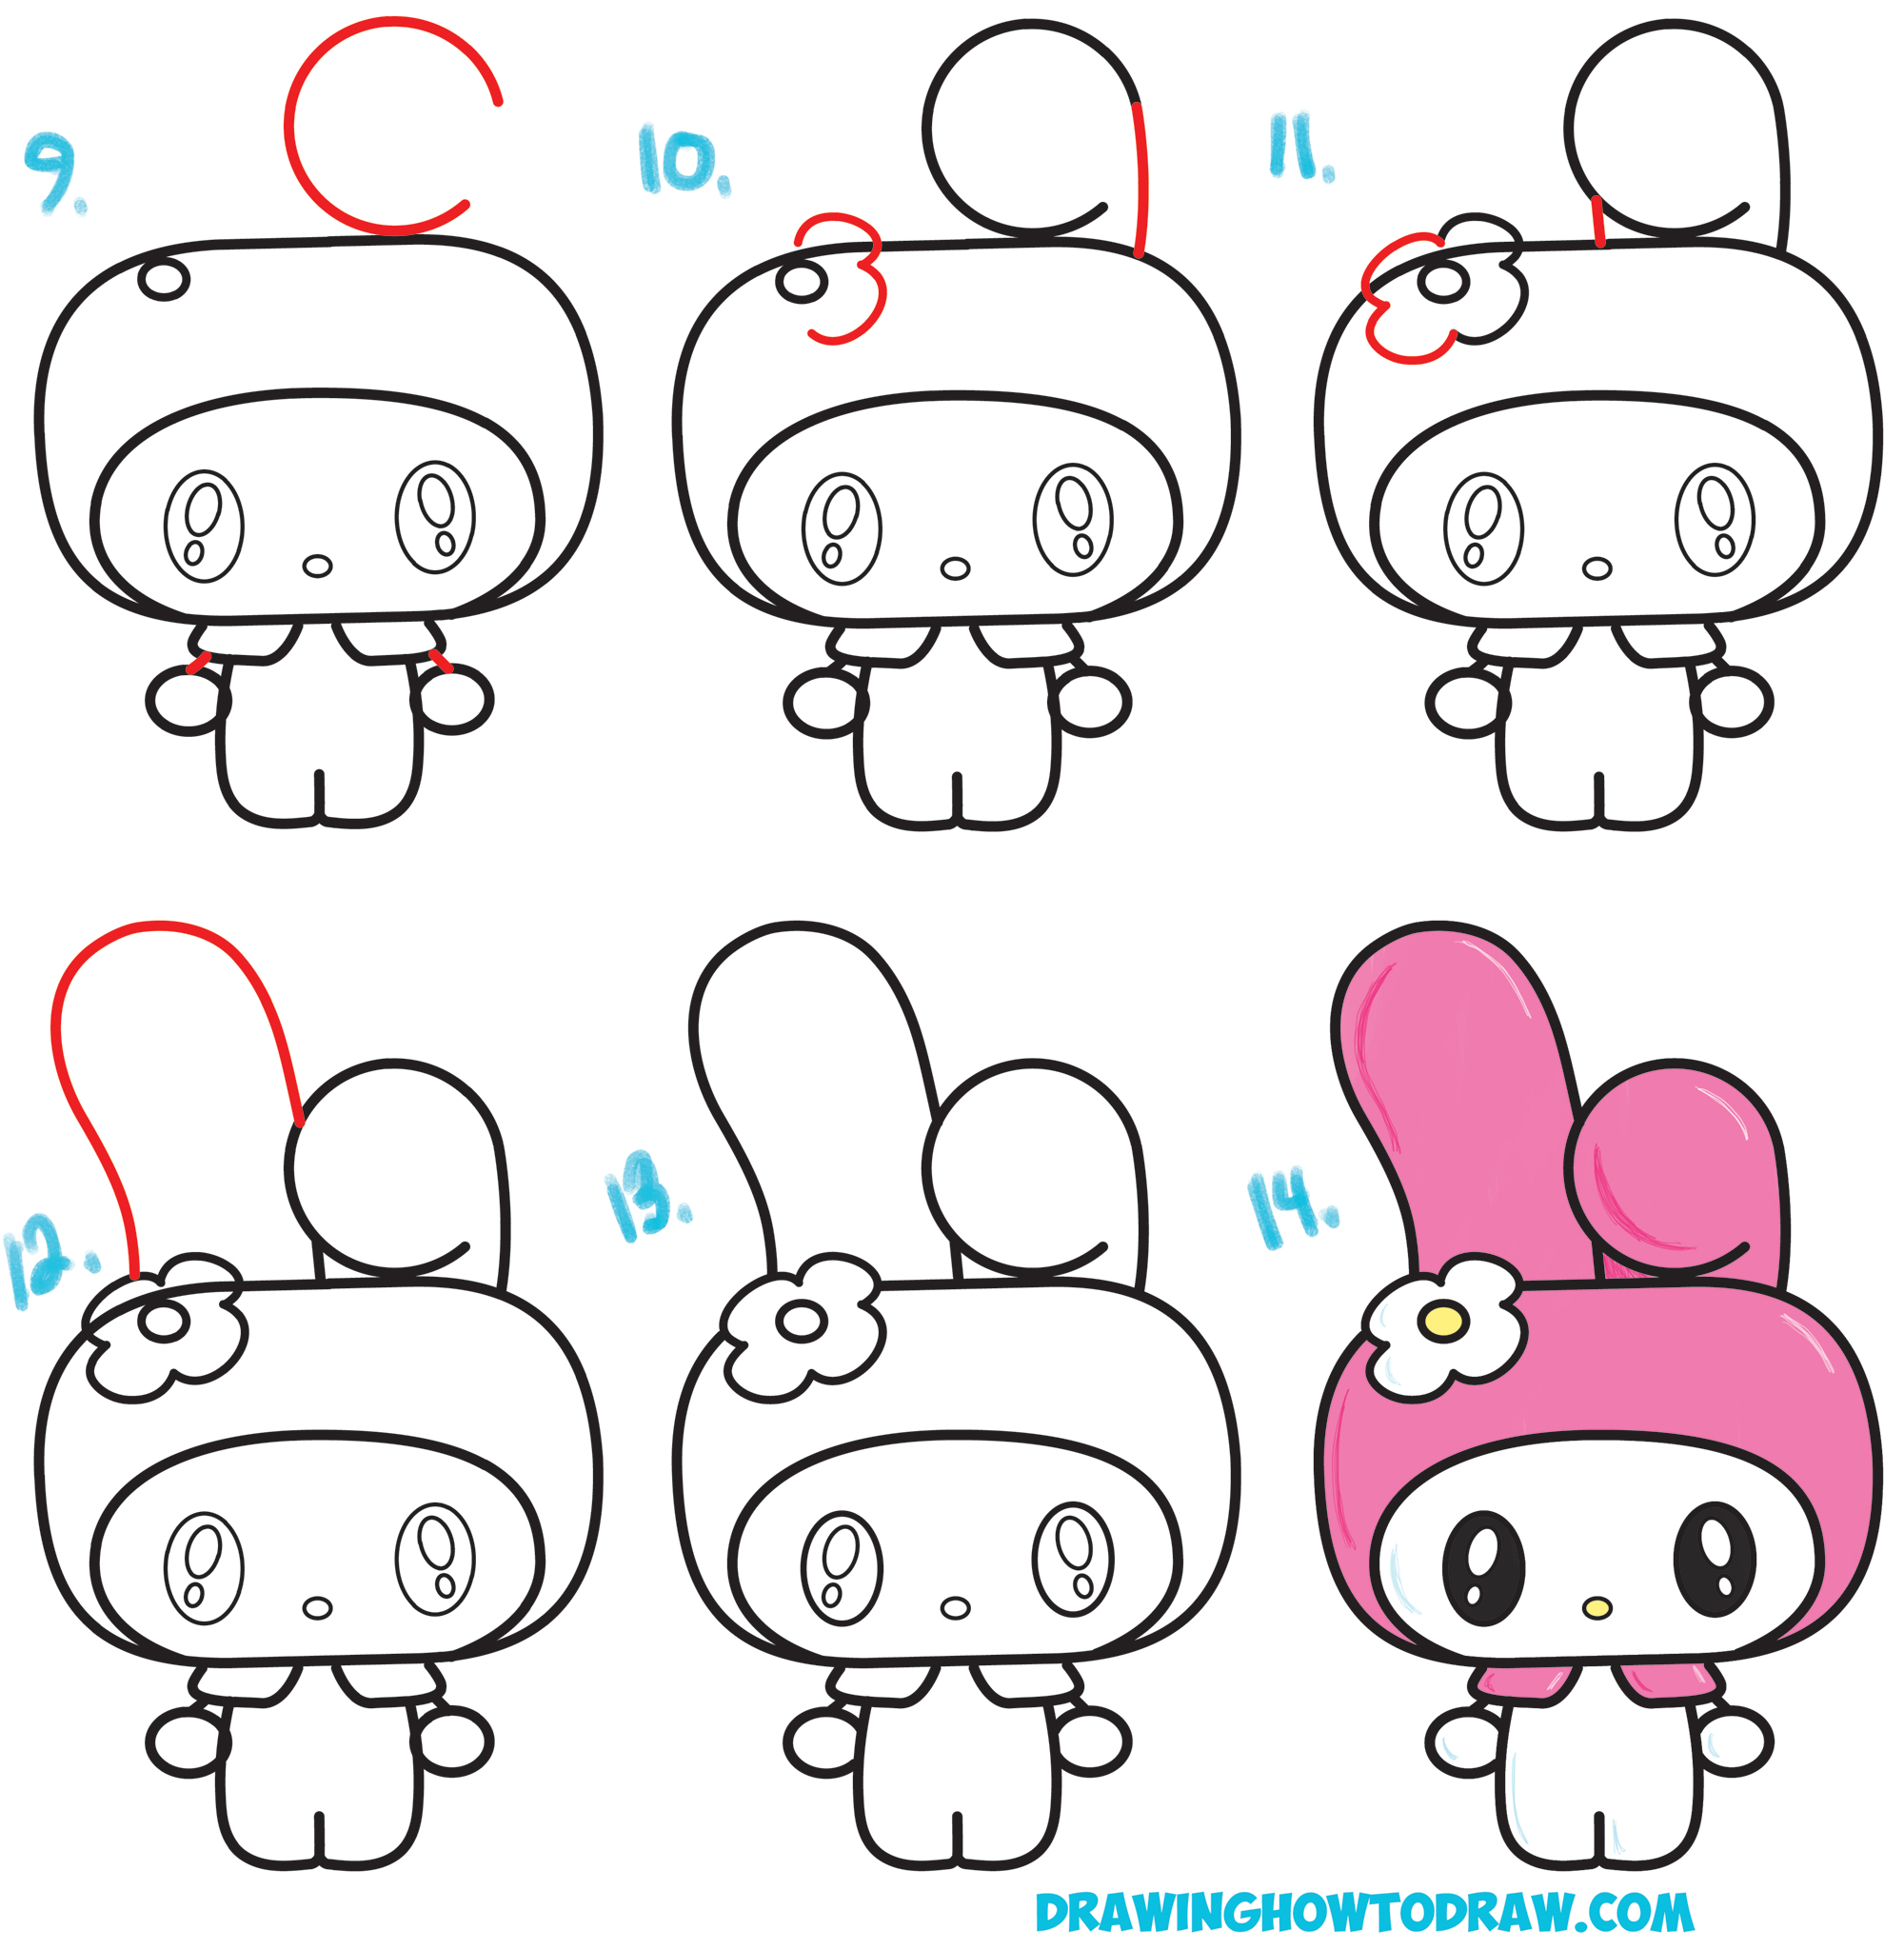 How To Draw Kawaii Chibi My Melody From Hello Kitty A Cute Bunny With A Hood On Easy Steps Drawing Lesson How To Draw Step By Step Drawing Tutorials